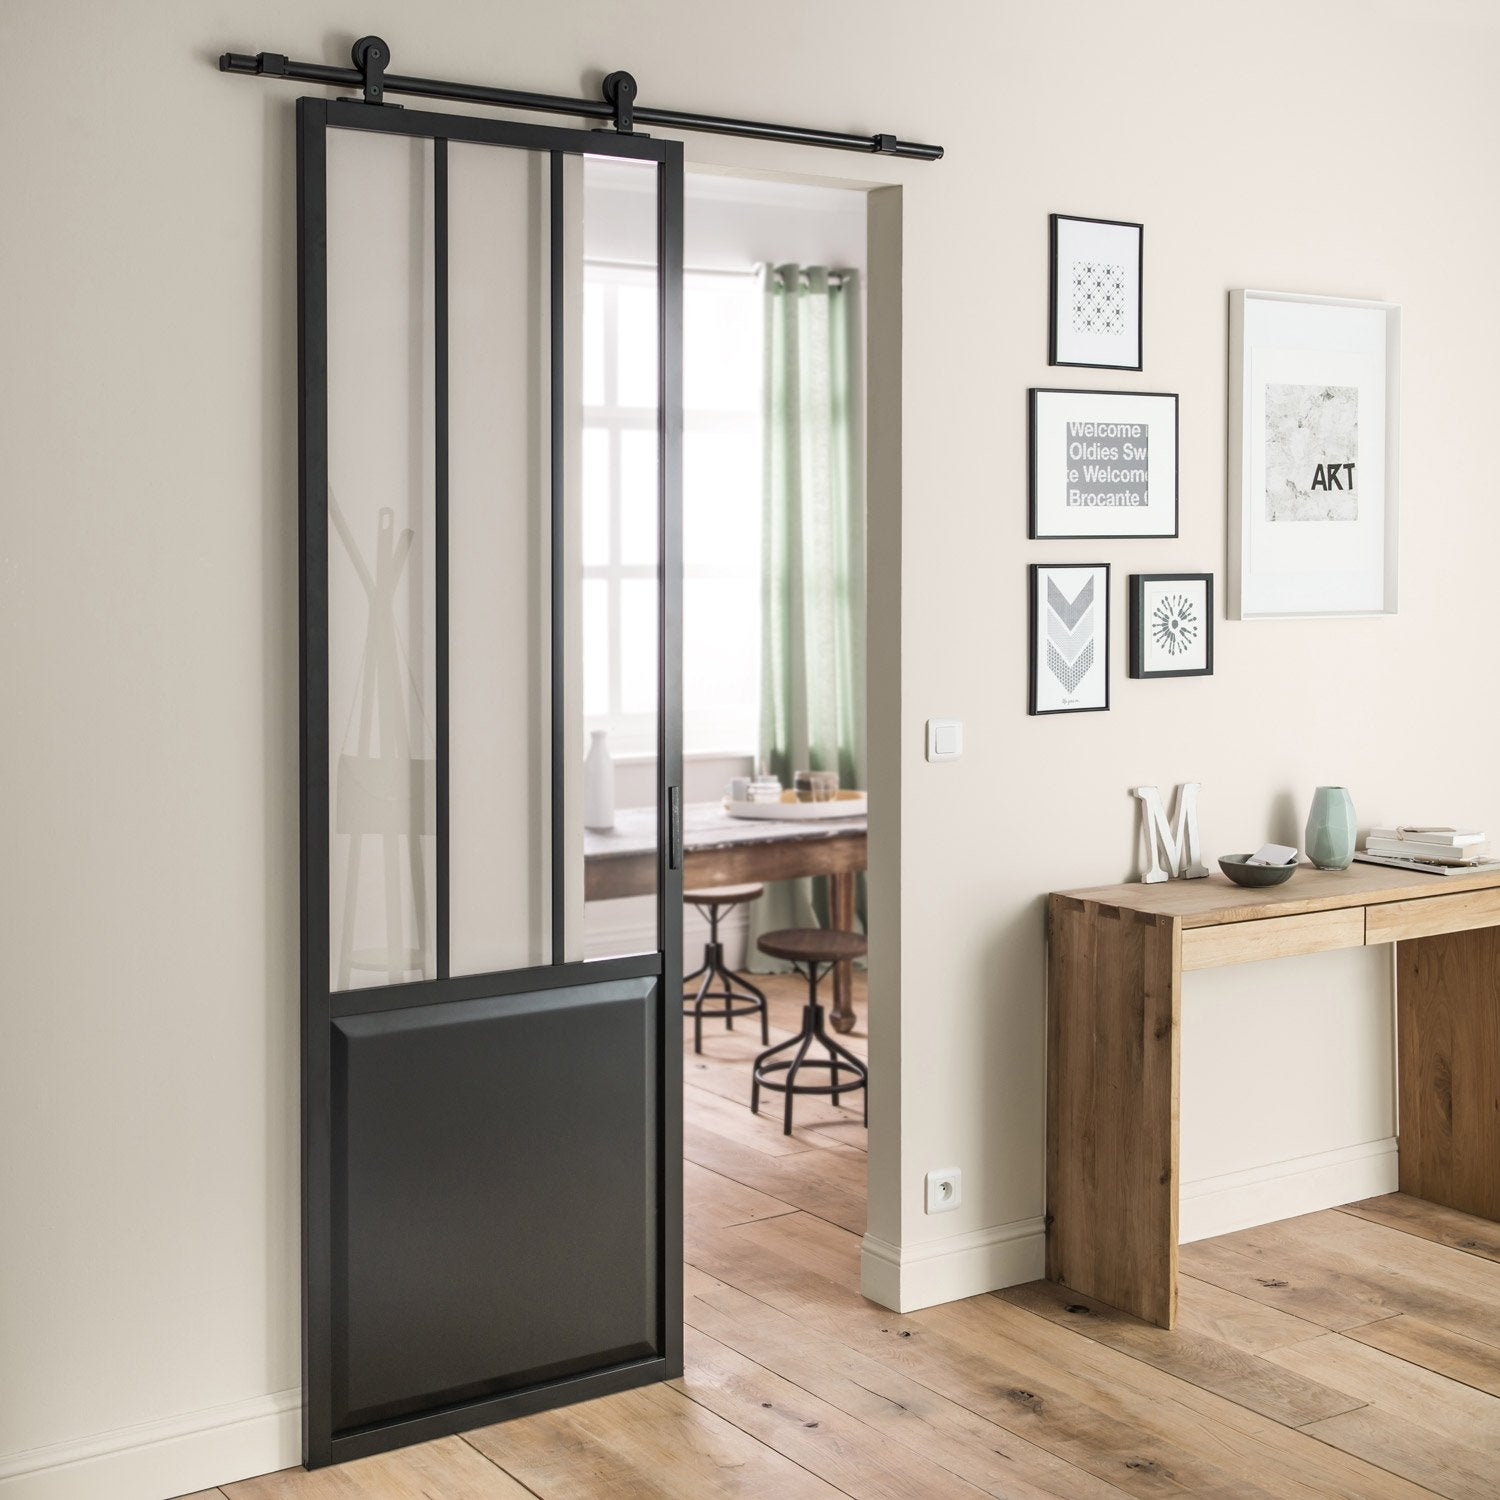 Ensemble porte coulissante atelier mdf rev tu avec le rail for Porte coulissante interieur leroy merlin